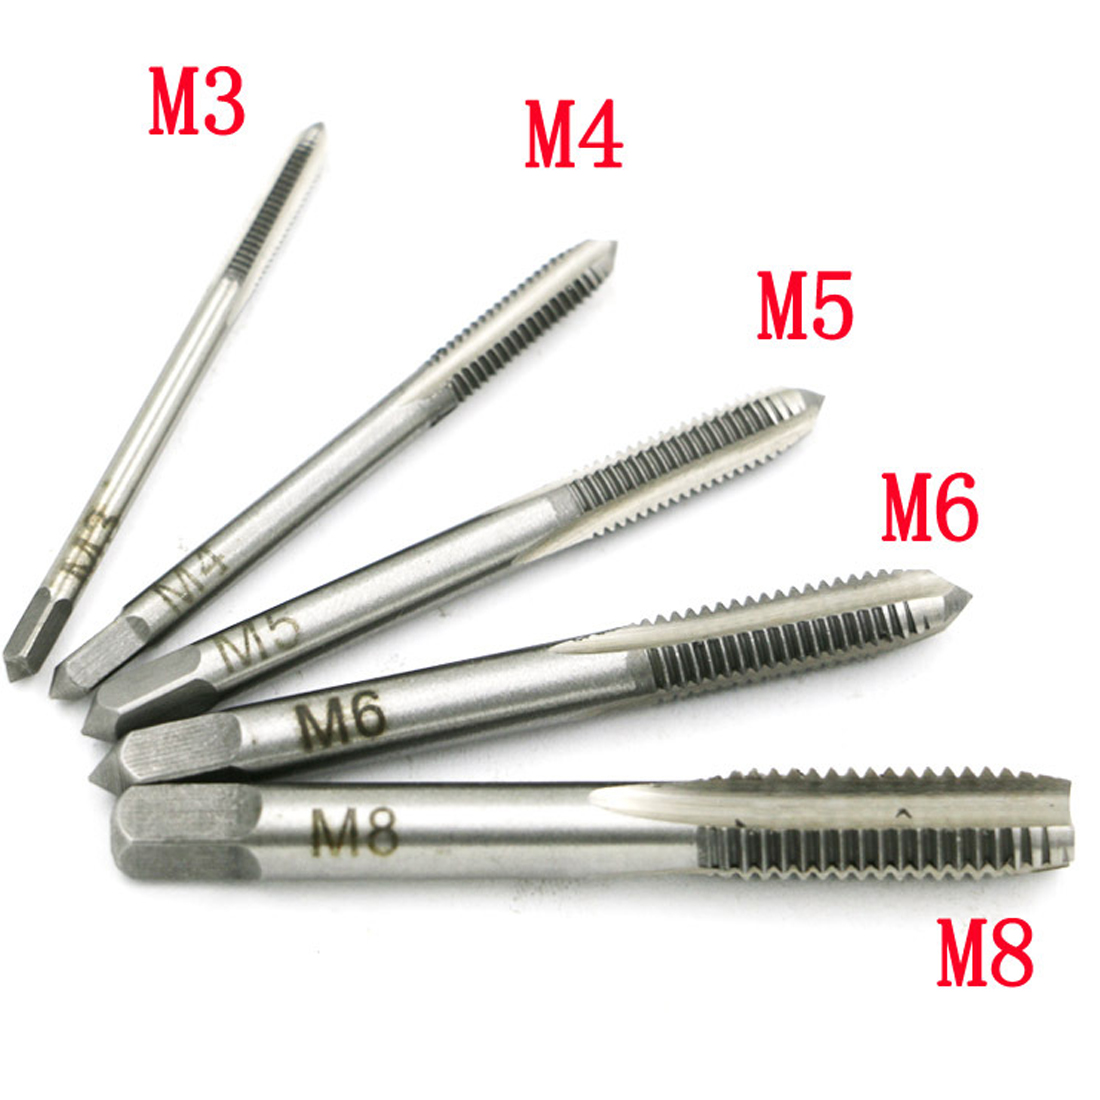 High Quality 5PCS/Set HSS M3 M4 M5 M6 M8 Machine Spiral Point Straight Fluted Screw Thread Hand Tap Drill free shipping 1pc high quality hss 6542 full cnc grinded machine straight flute m48 3 0 tap screw tap for inner threading making